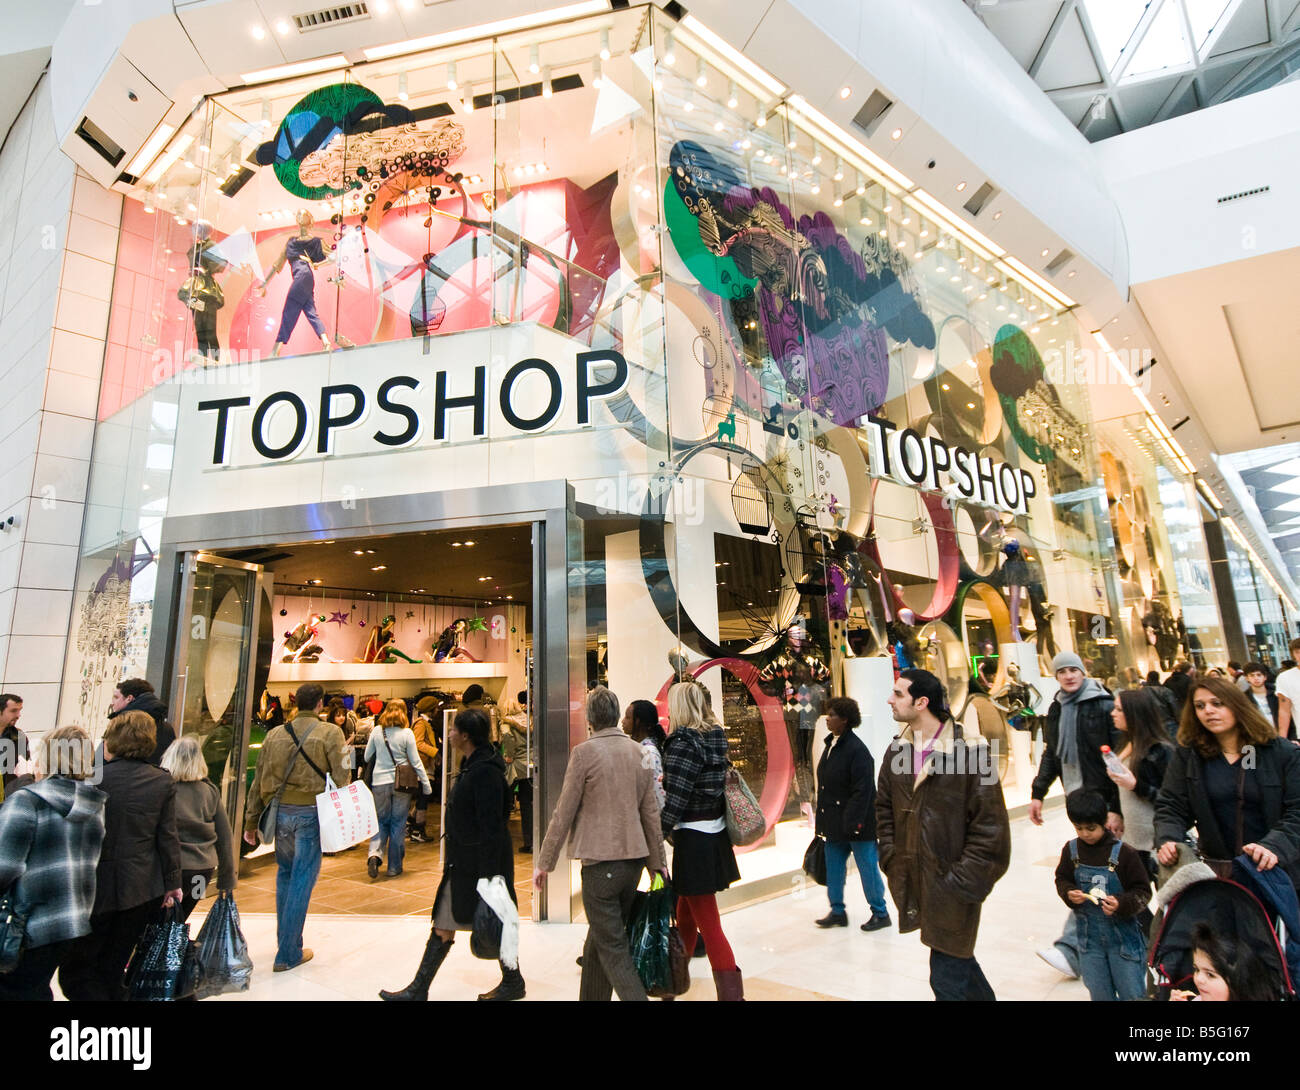 Shoppers ouside Topshop in Westfield shopping mall London Stock Photo